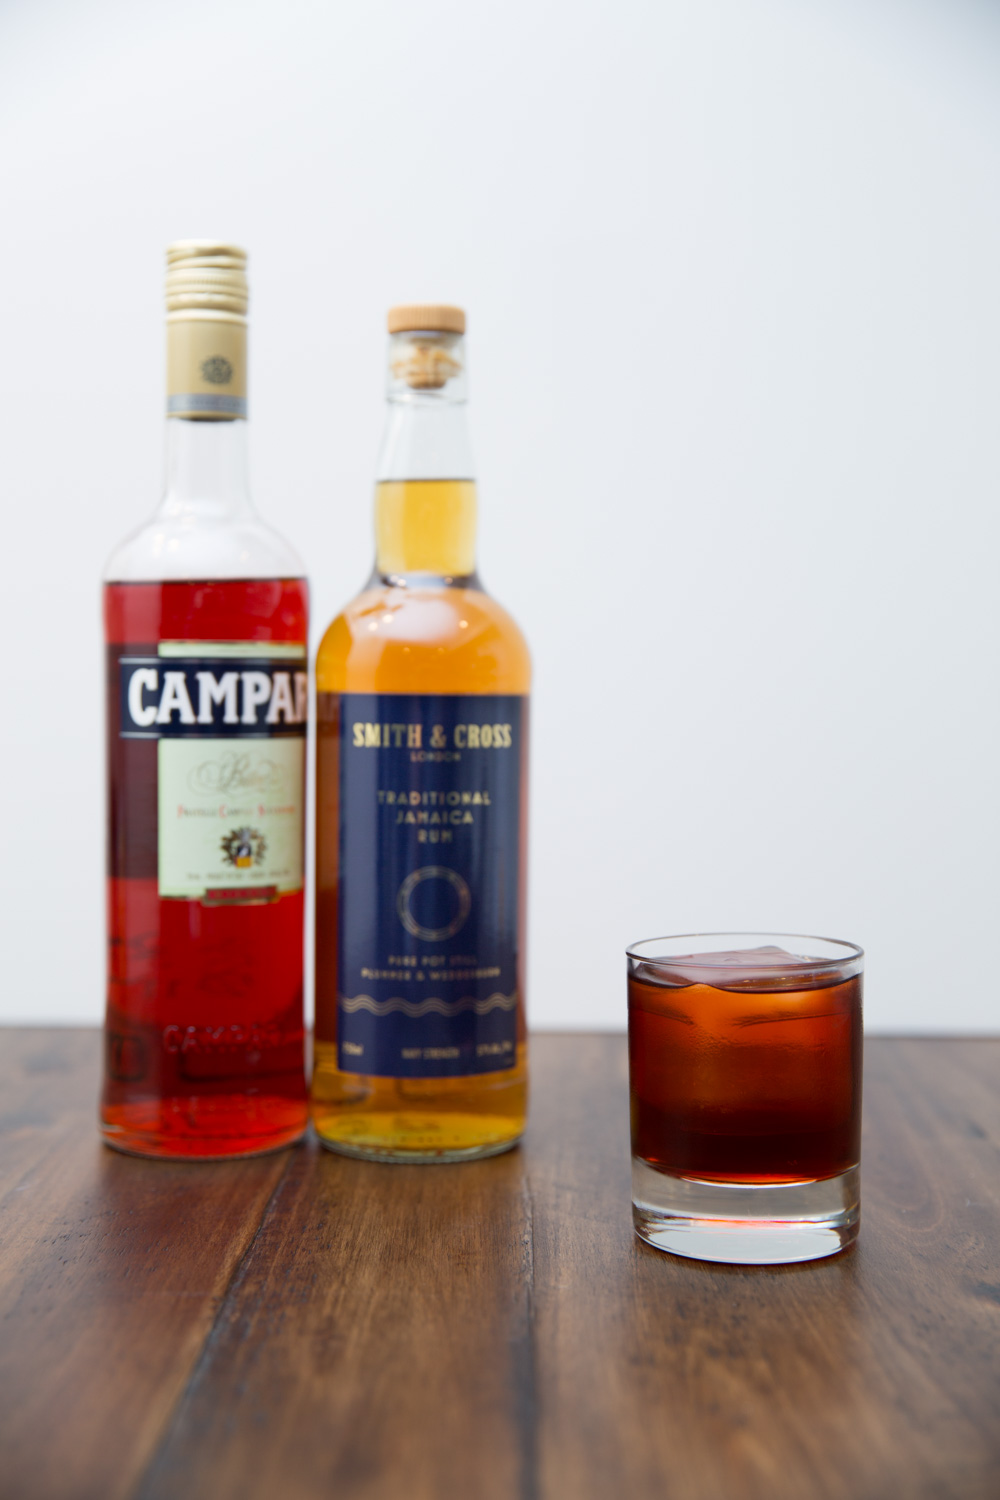 Kingston Negroni with Smith & Cross Rum and Campari